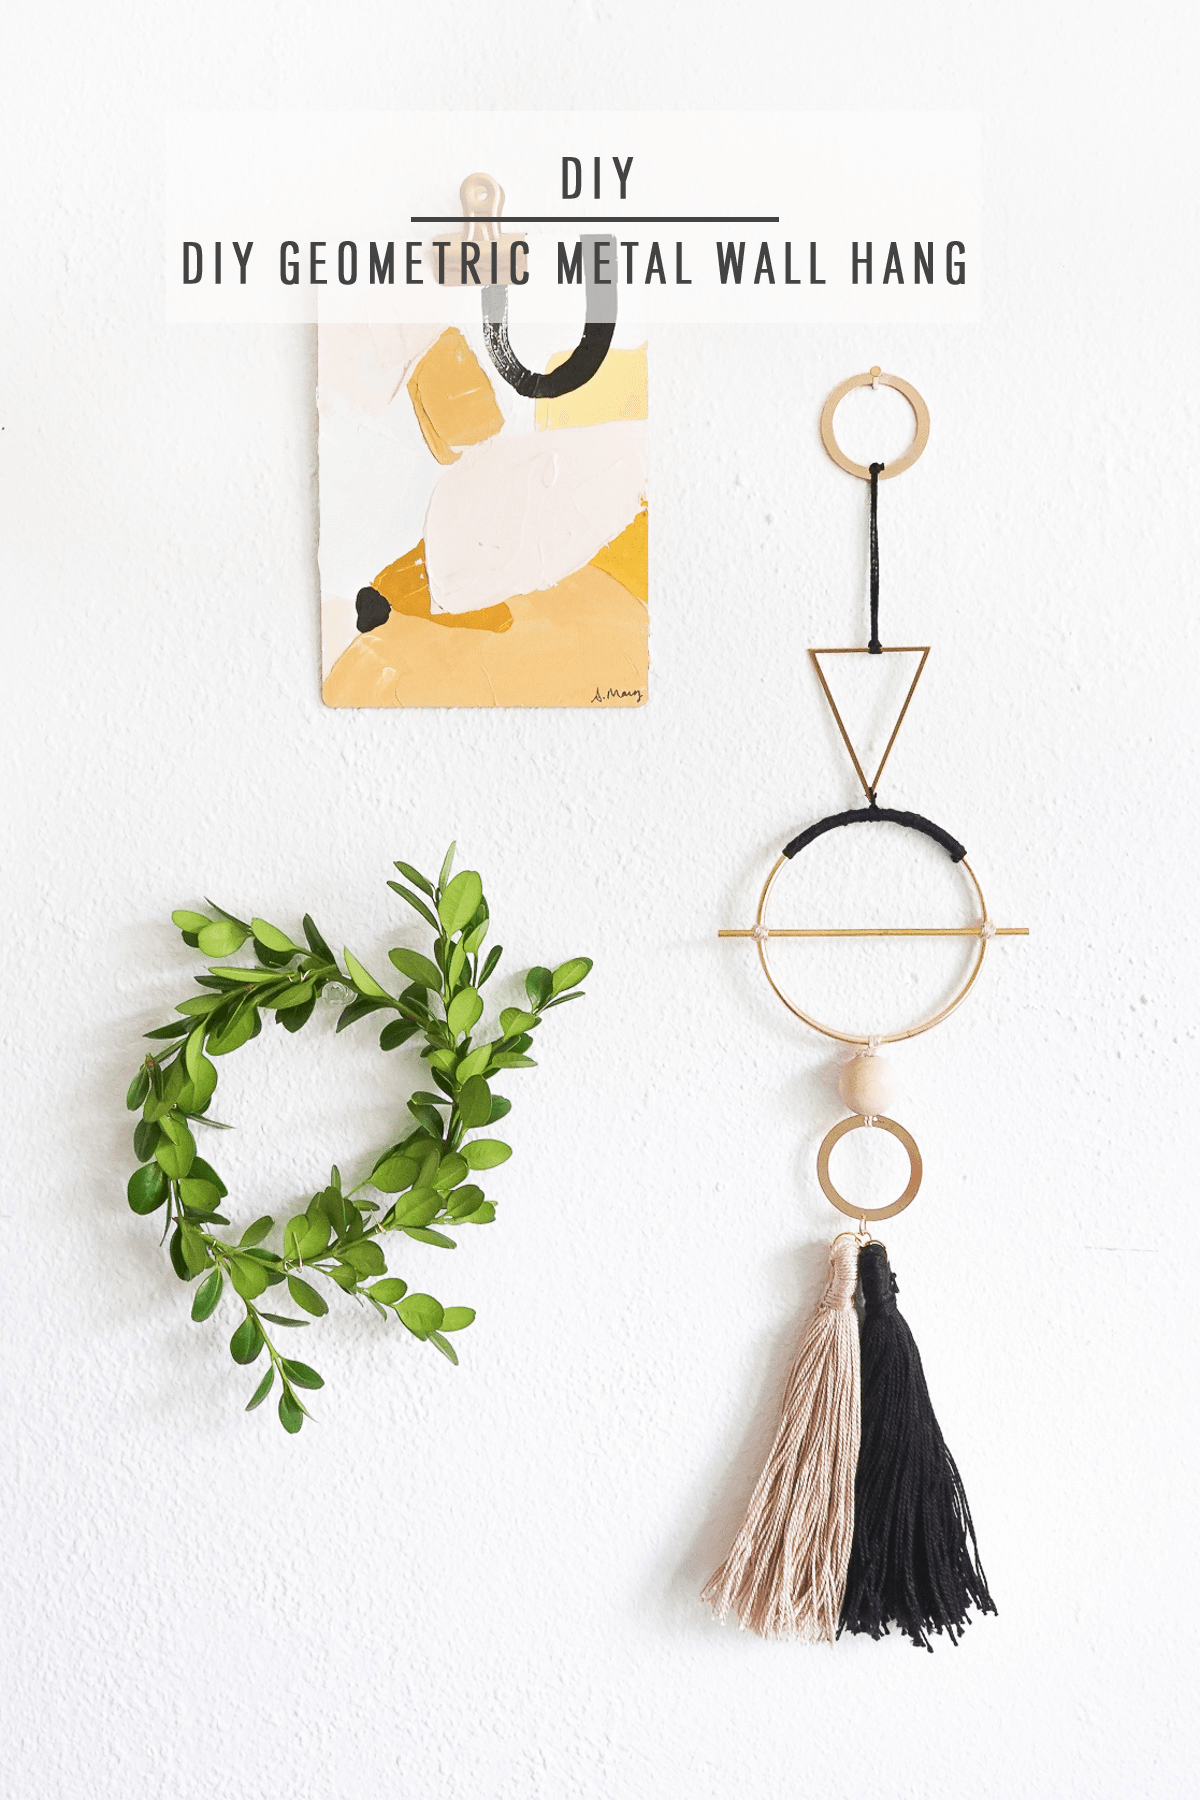 Diy Geometric Metal Wall Hang By Ashley Rose Of Sugar Cloth A Top Lifestyle Blog In Houston Texas